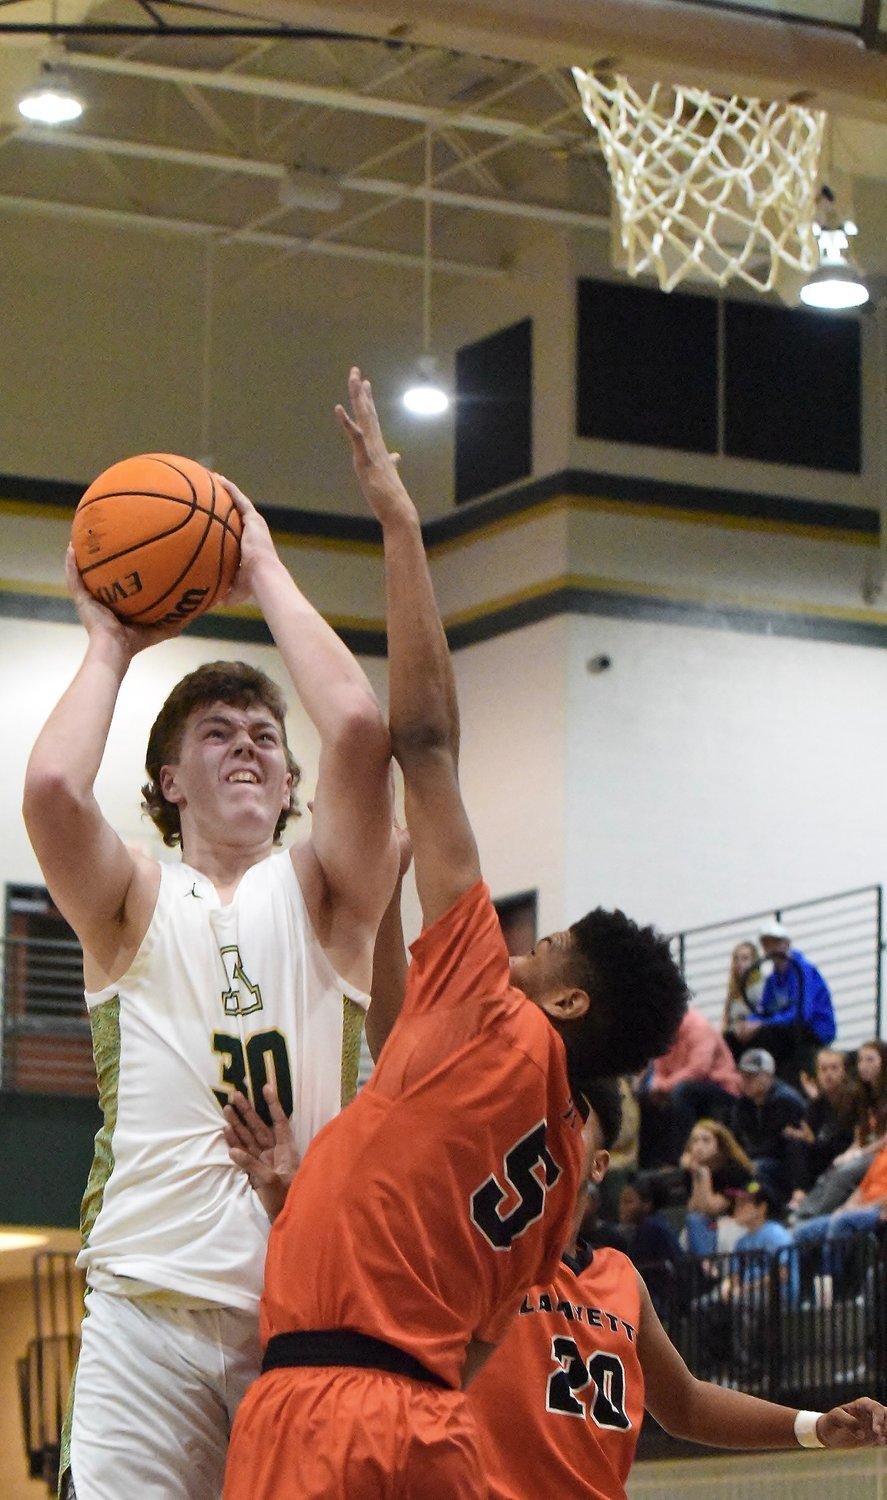 Adairsville High School Basketball Christmas Tournaments 2020 COVID 19 hampering college recruiting of Bartow athletes | The